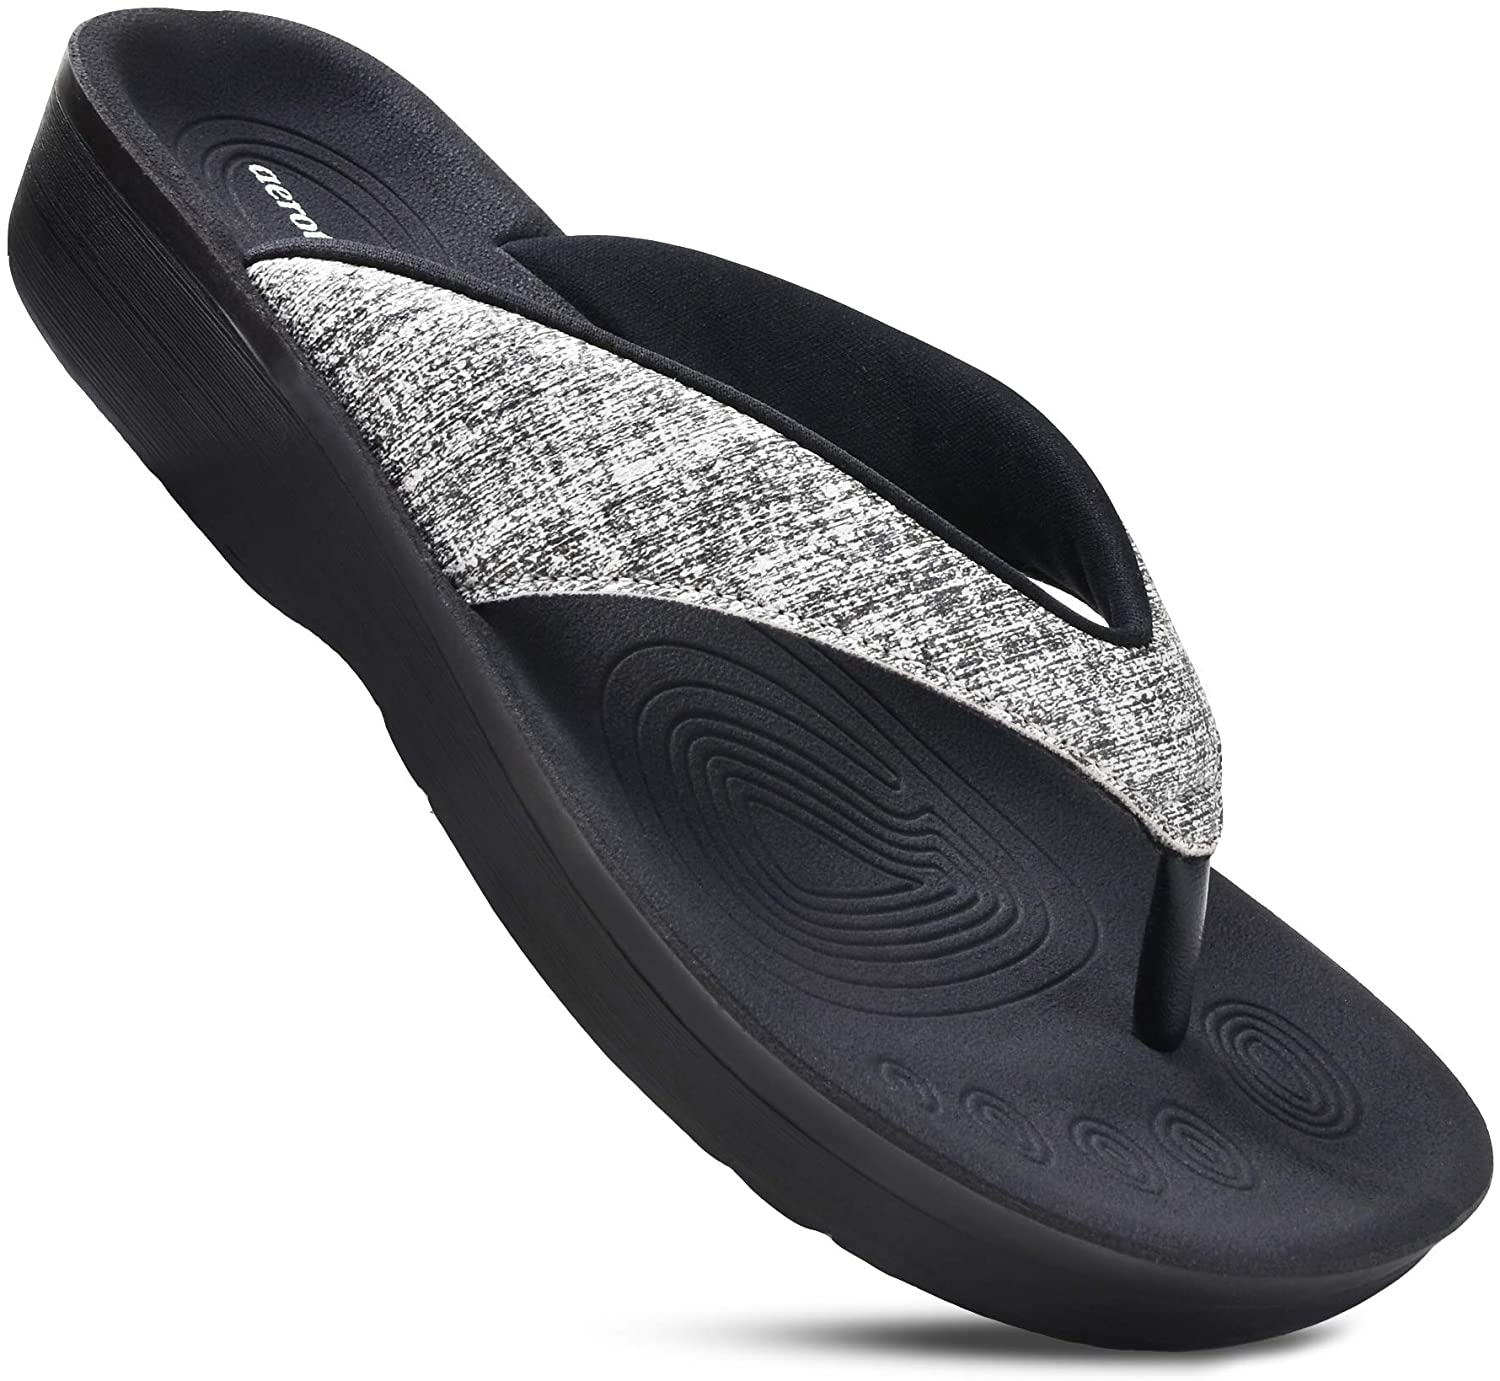 AEROTHOTIC Original Orthotic Comfort Thong Style Flip Flops Sandals for Women - Mellow Black - Size 8